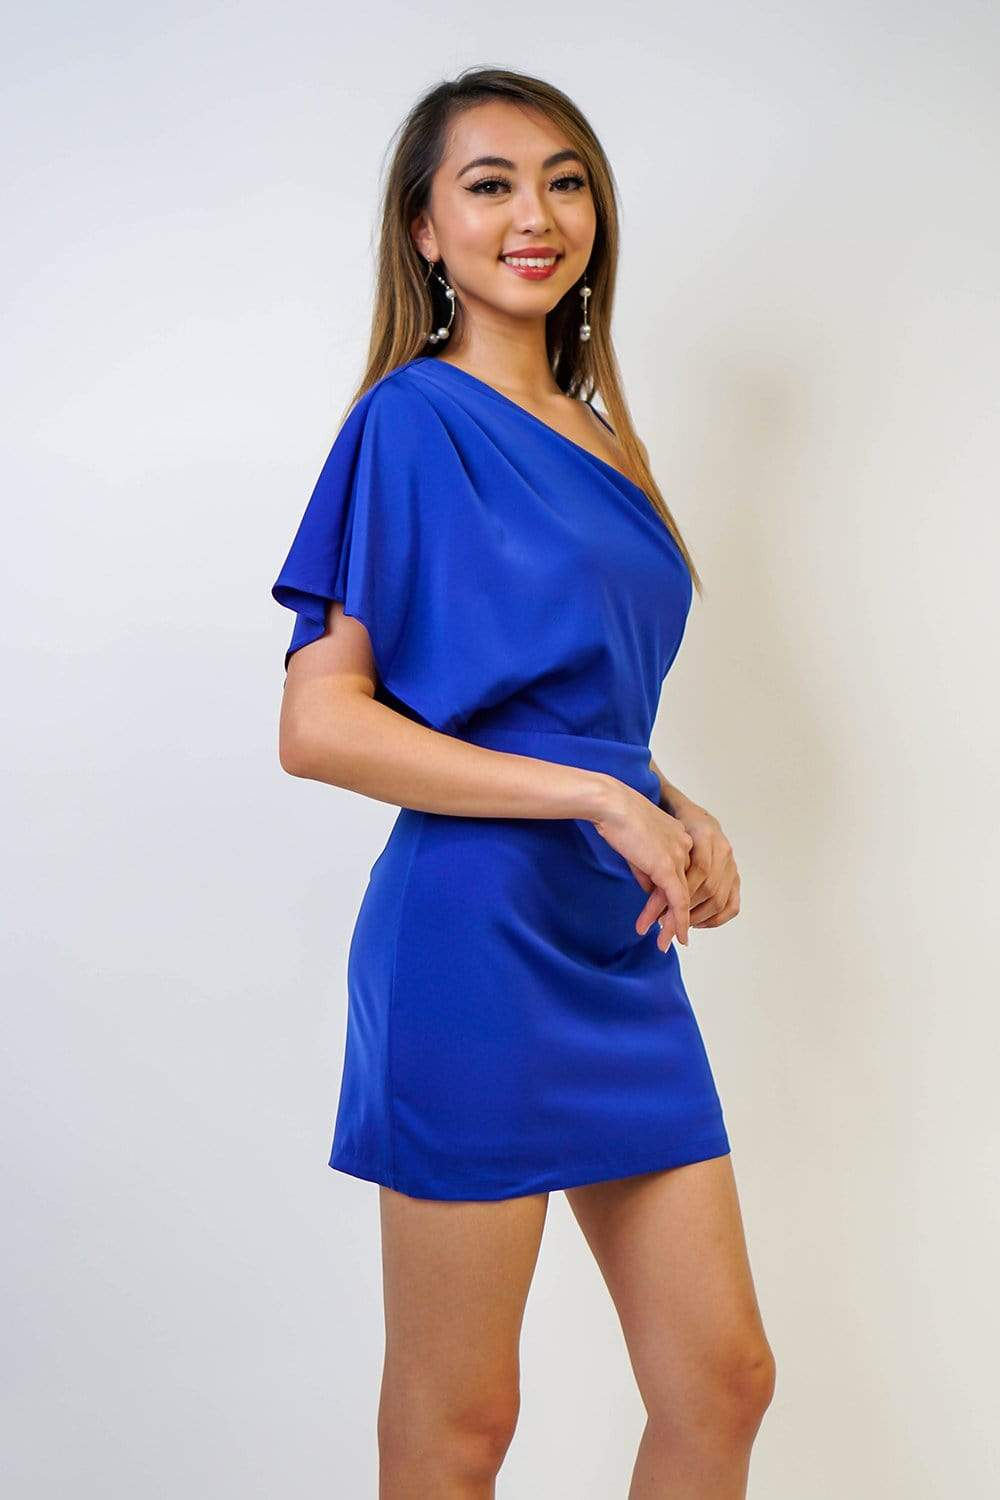 DRESS Dressy Cobalt Blue One Shoulder Satin Dress - Chloe Dao